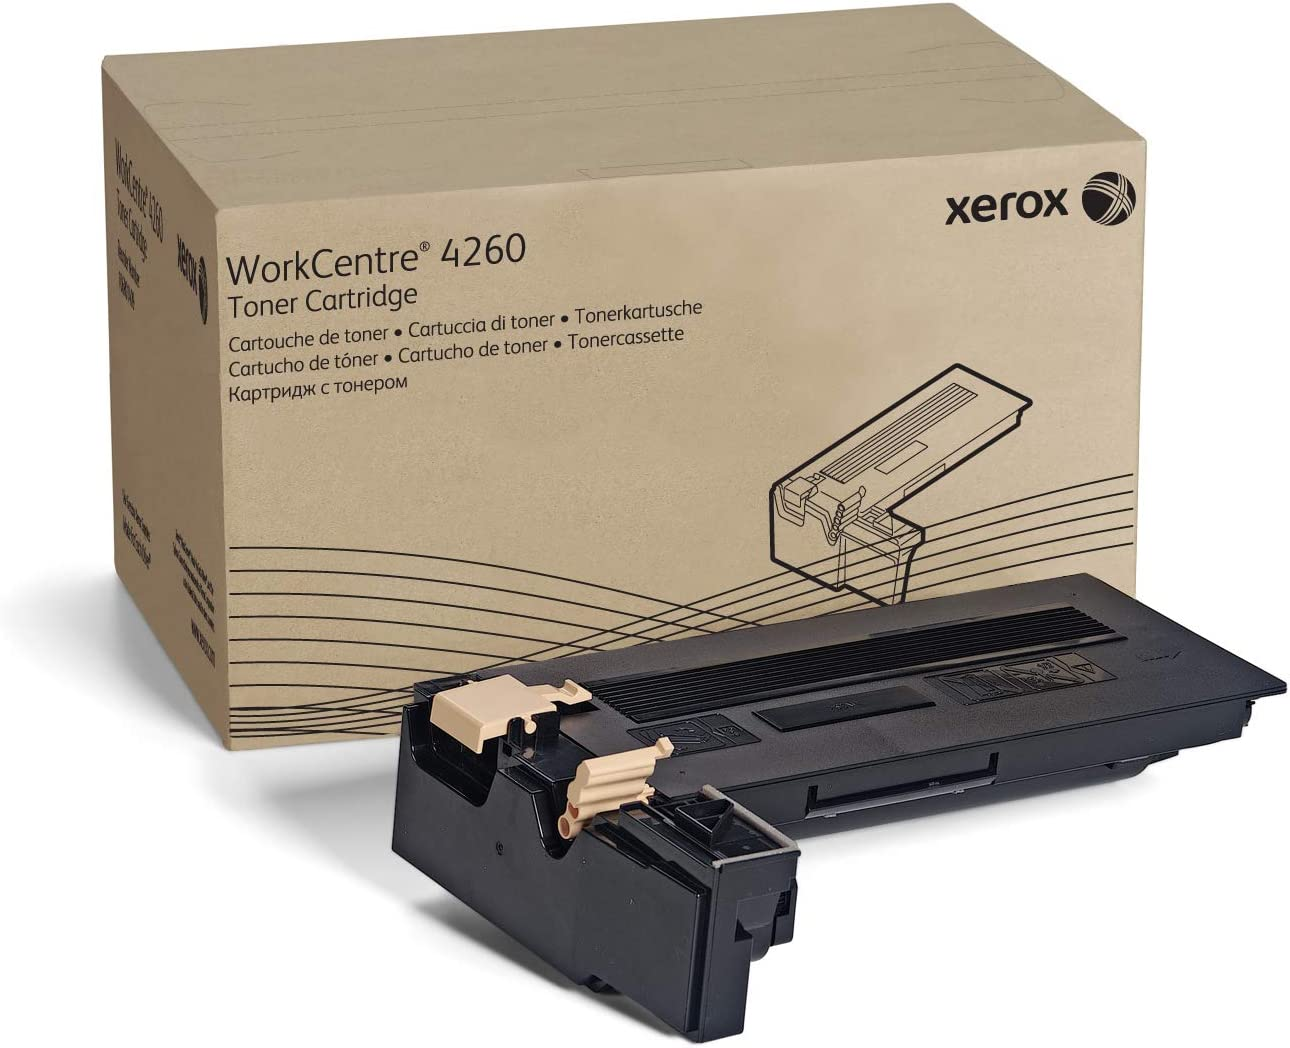 106R02650 GSA Compliant yield 25000 pages Genuine Xerox Black Toner Cartridge for use in WorkCentre 4250//4260